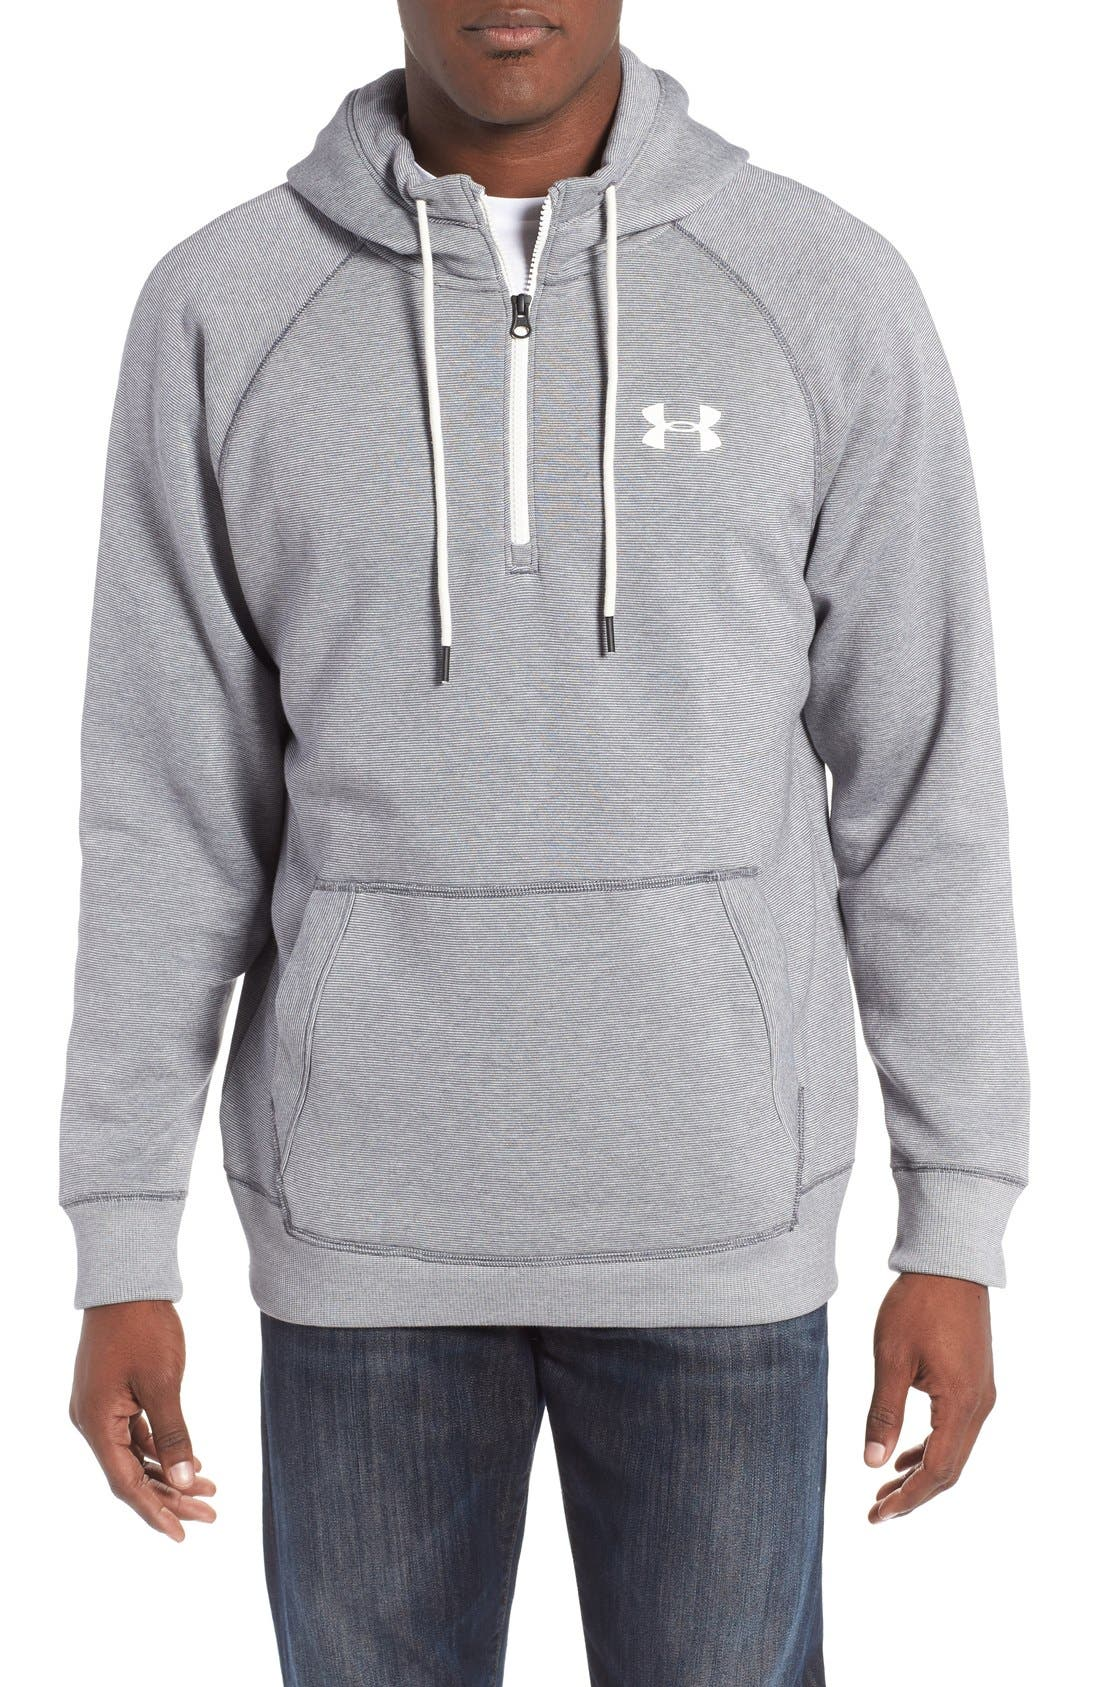 Under Armour Rival Quarter Zip Hoodie